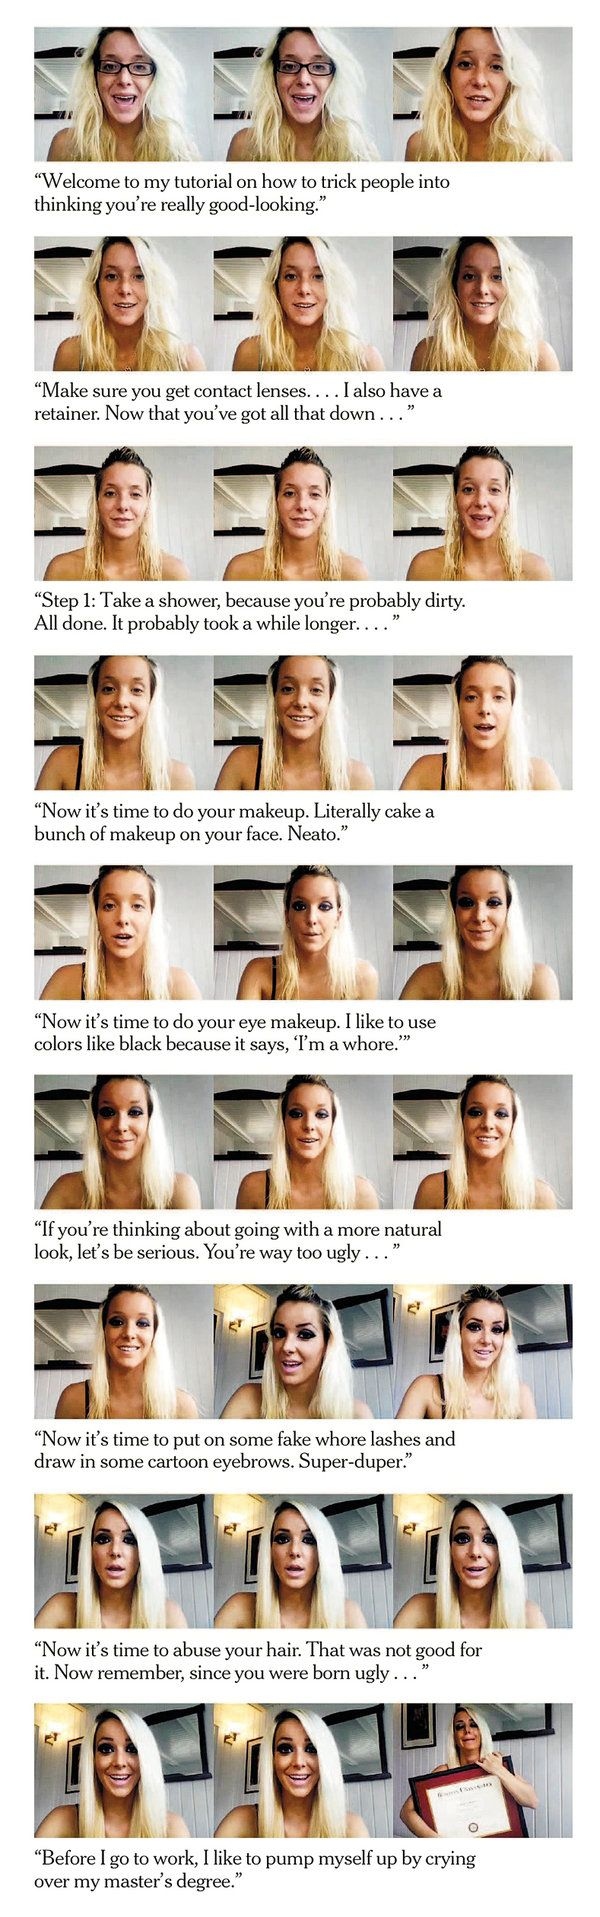 Jenna Marbles, The Woman With 1 Billion Clicks  Nytimes